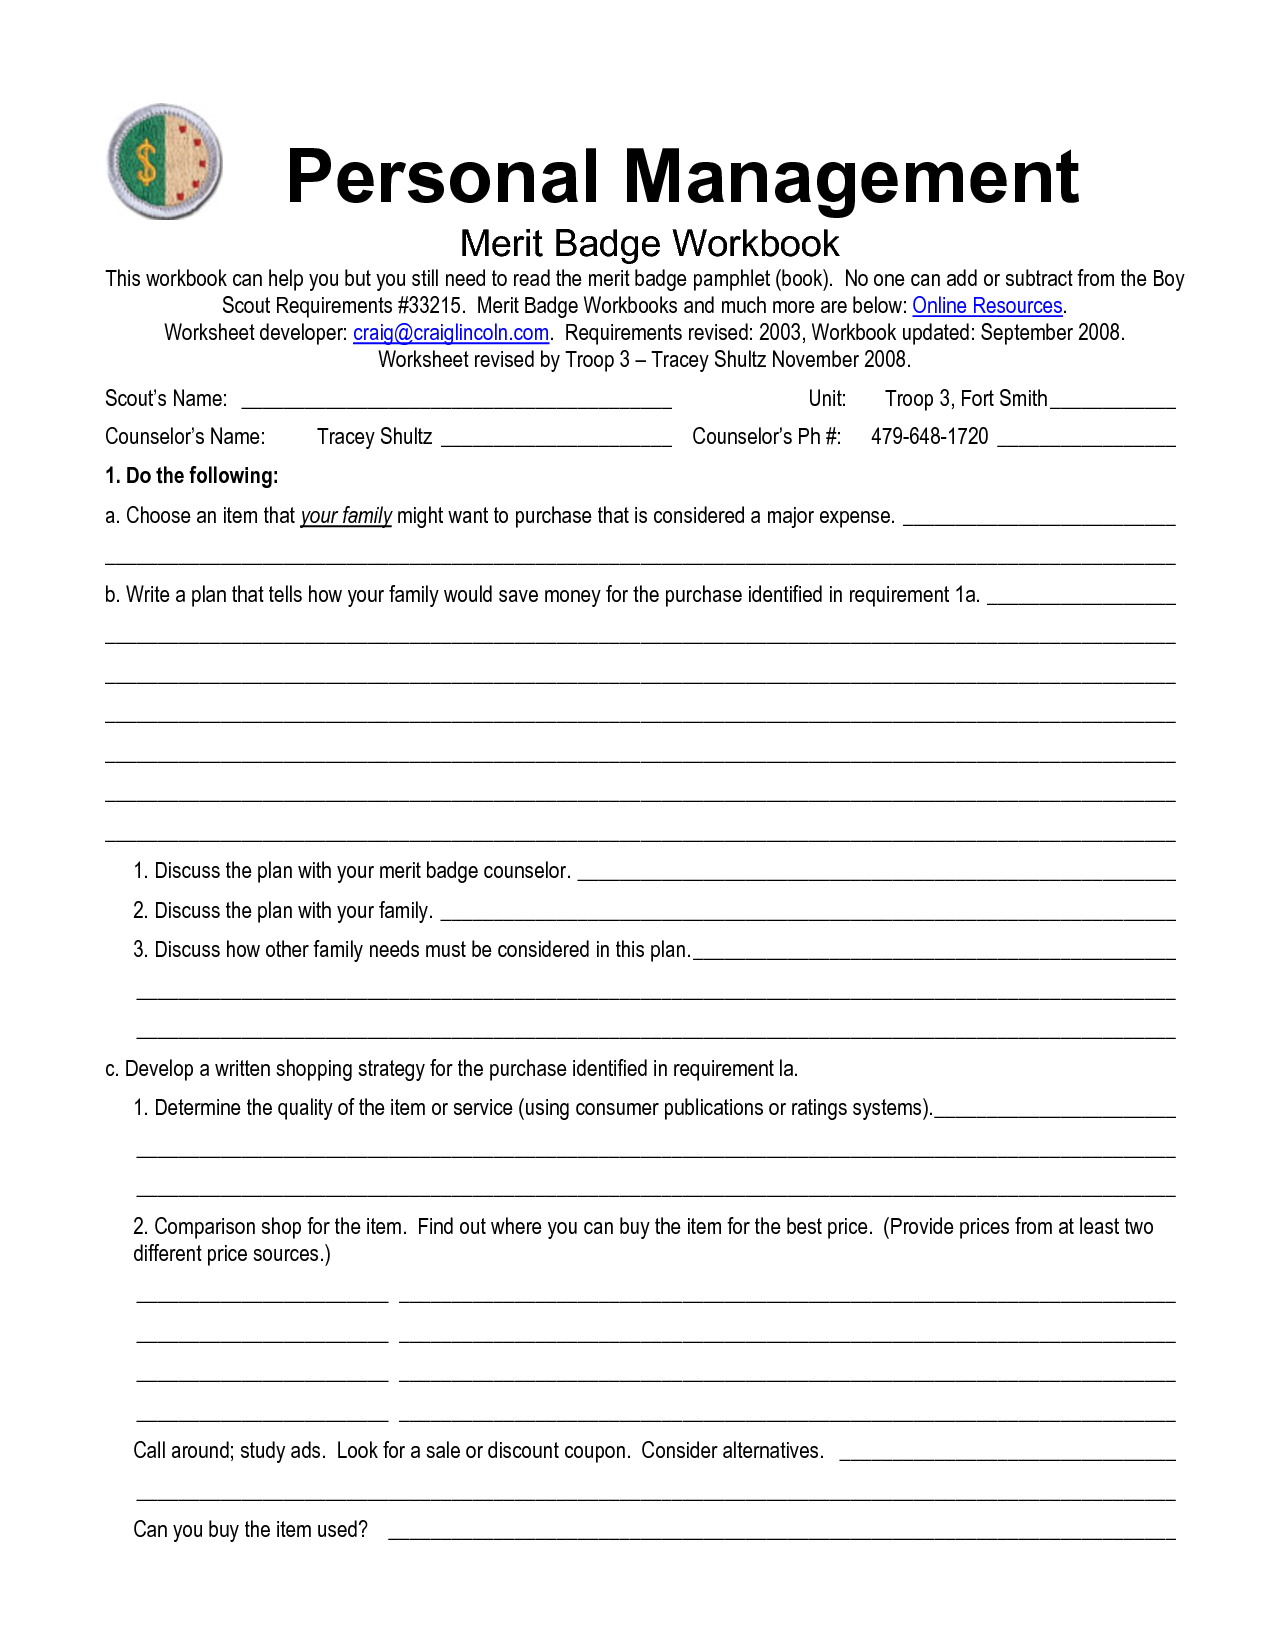 6 Best Images of Personal Management Merit Badge Worksheet  BSA Personal Management Merit Badge